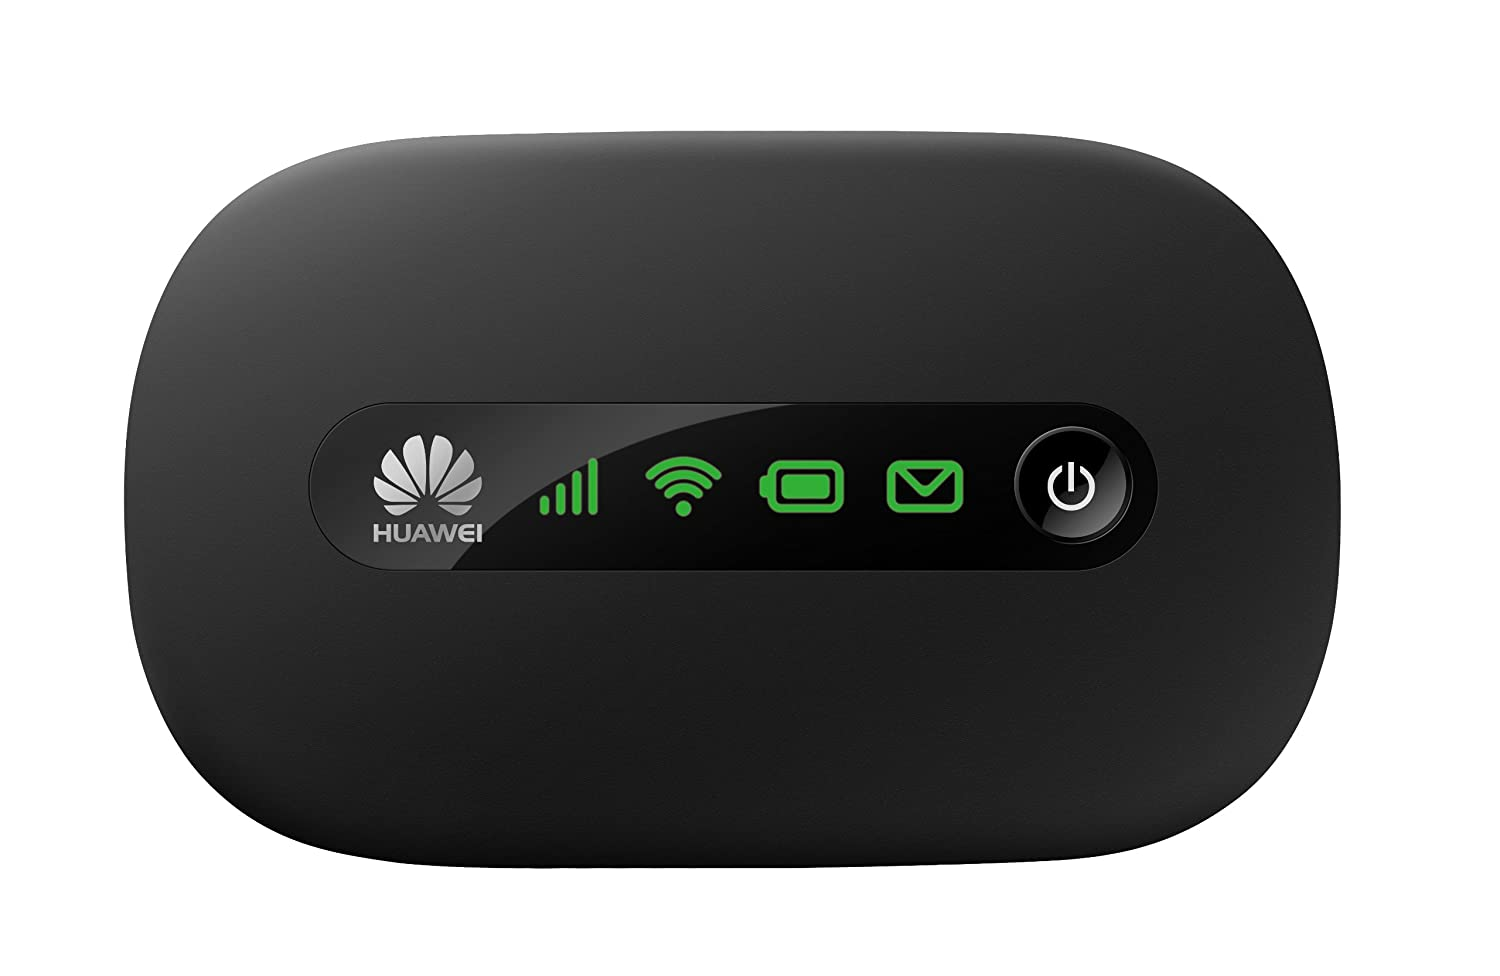 Huawei E5220s-6 21Mbps 3G Mobile WiFi (3G 850/1900MHz in the Americas, 3G 2100MHz in Europe, Asia, Middle East, Africa) - Black